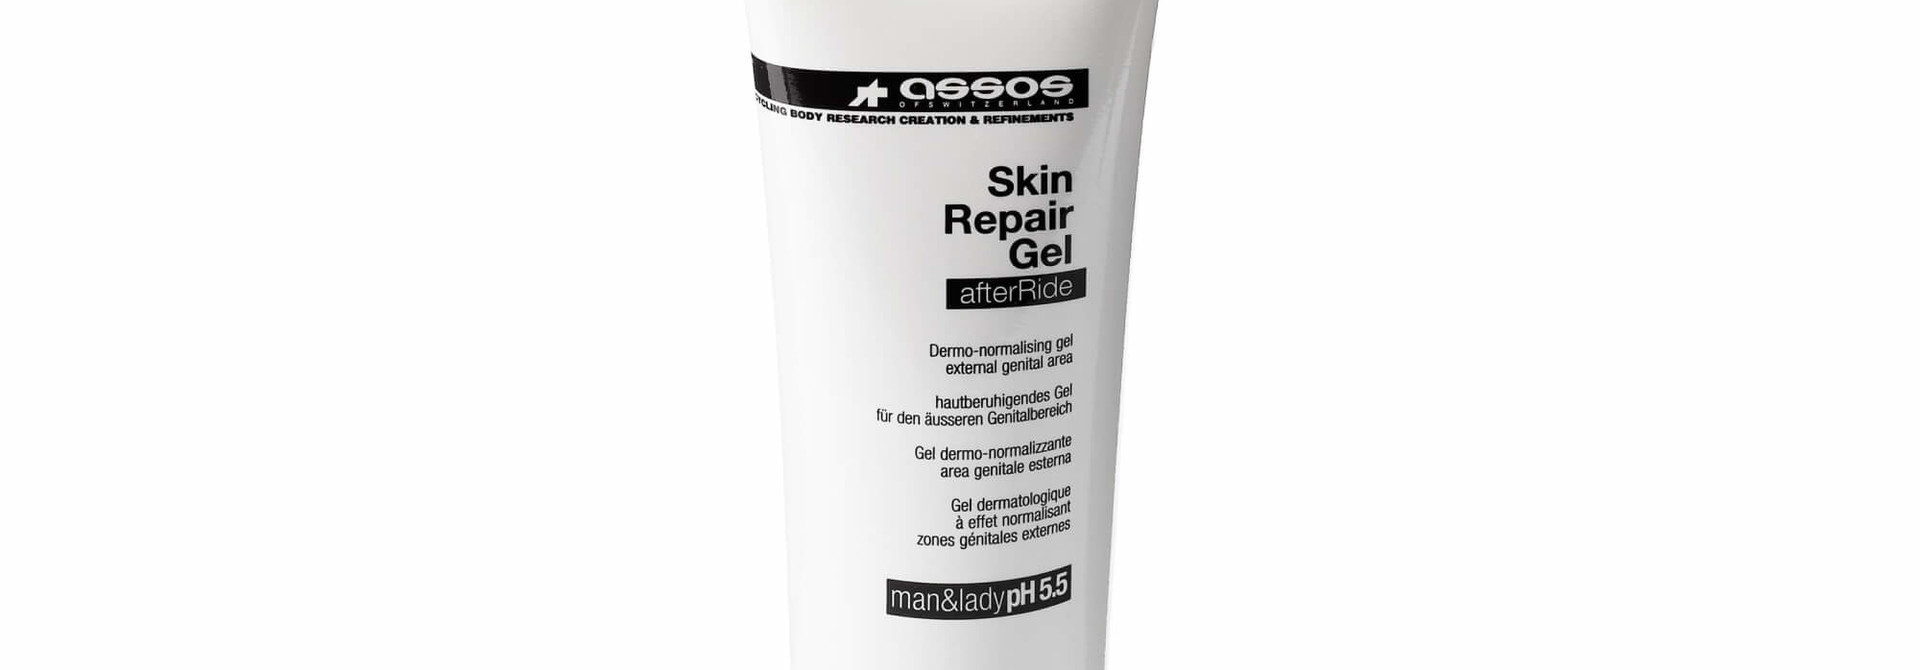 Skin Repair Gel Single Unit 75 ml